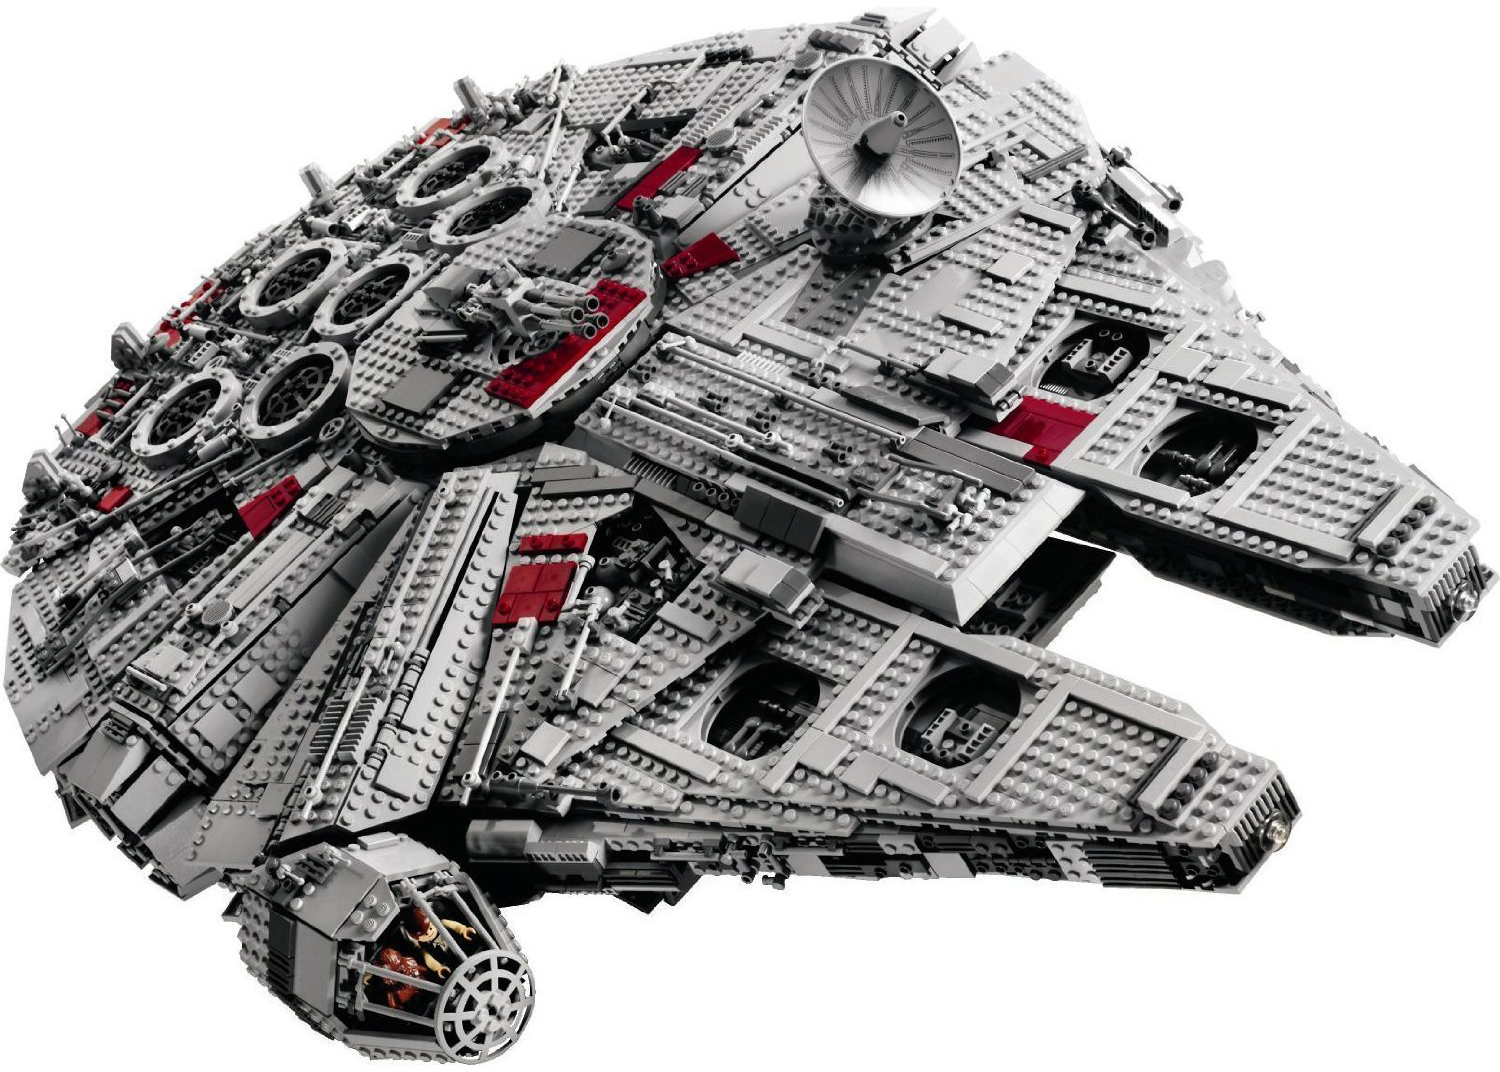 star wars and legos have always gone together like peanut butter and jelly but this lego millenium falcon takes the cake the lego millenium falcon is a